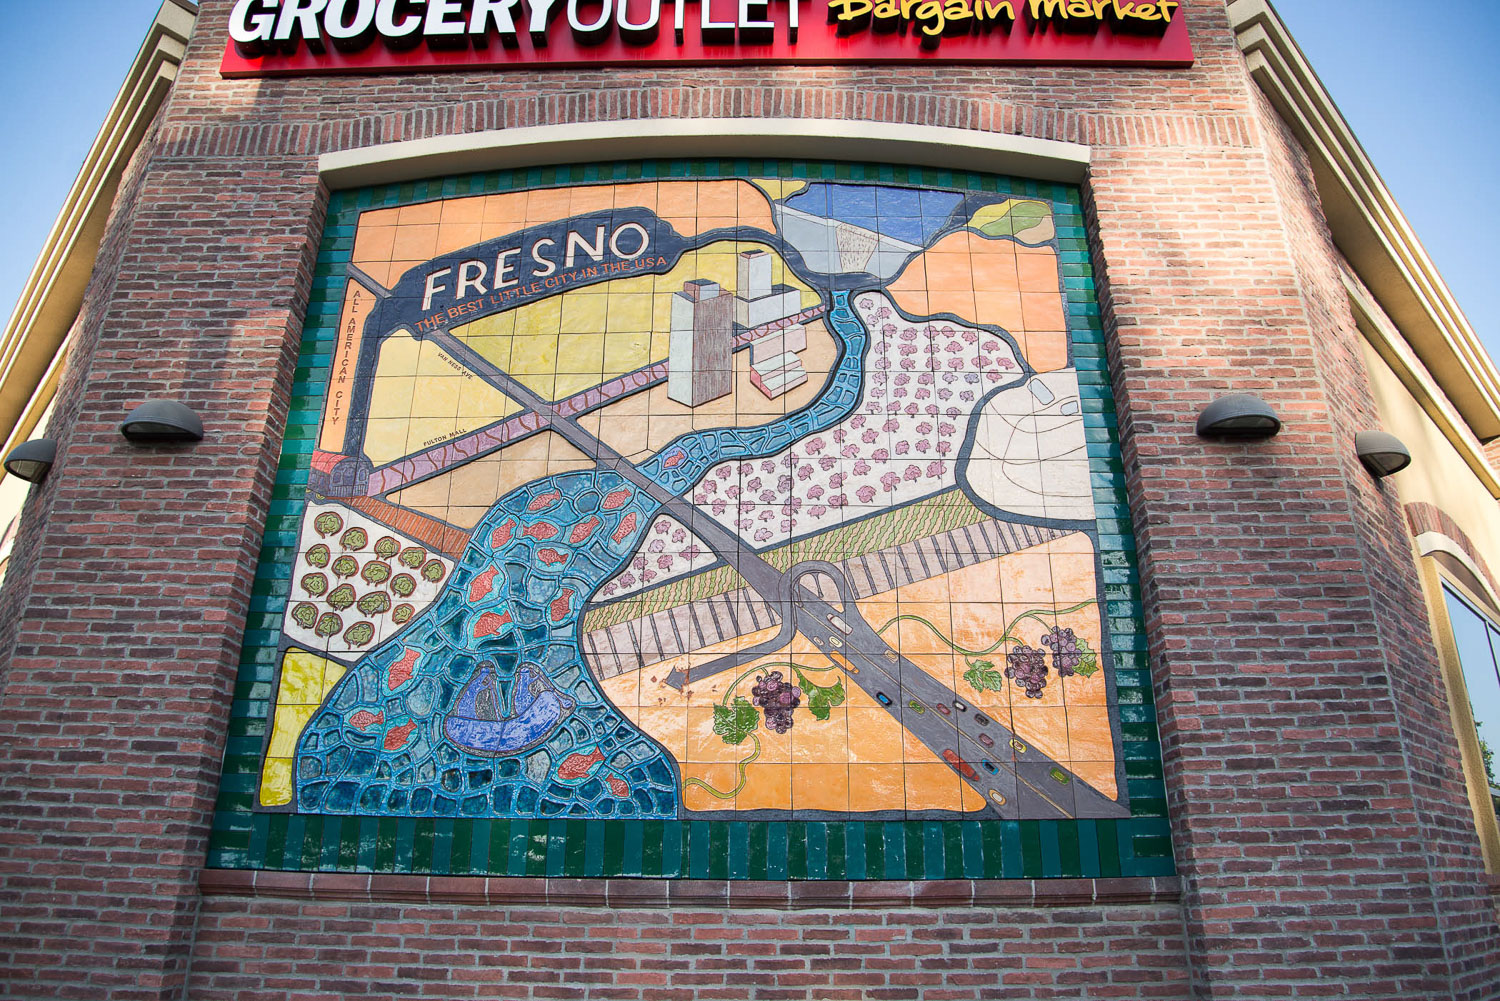 Grocery Outlet Mural